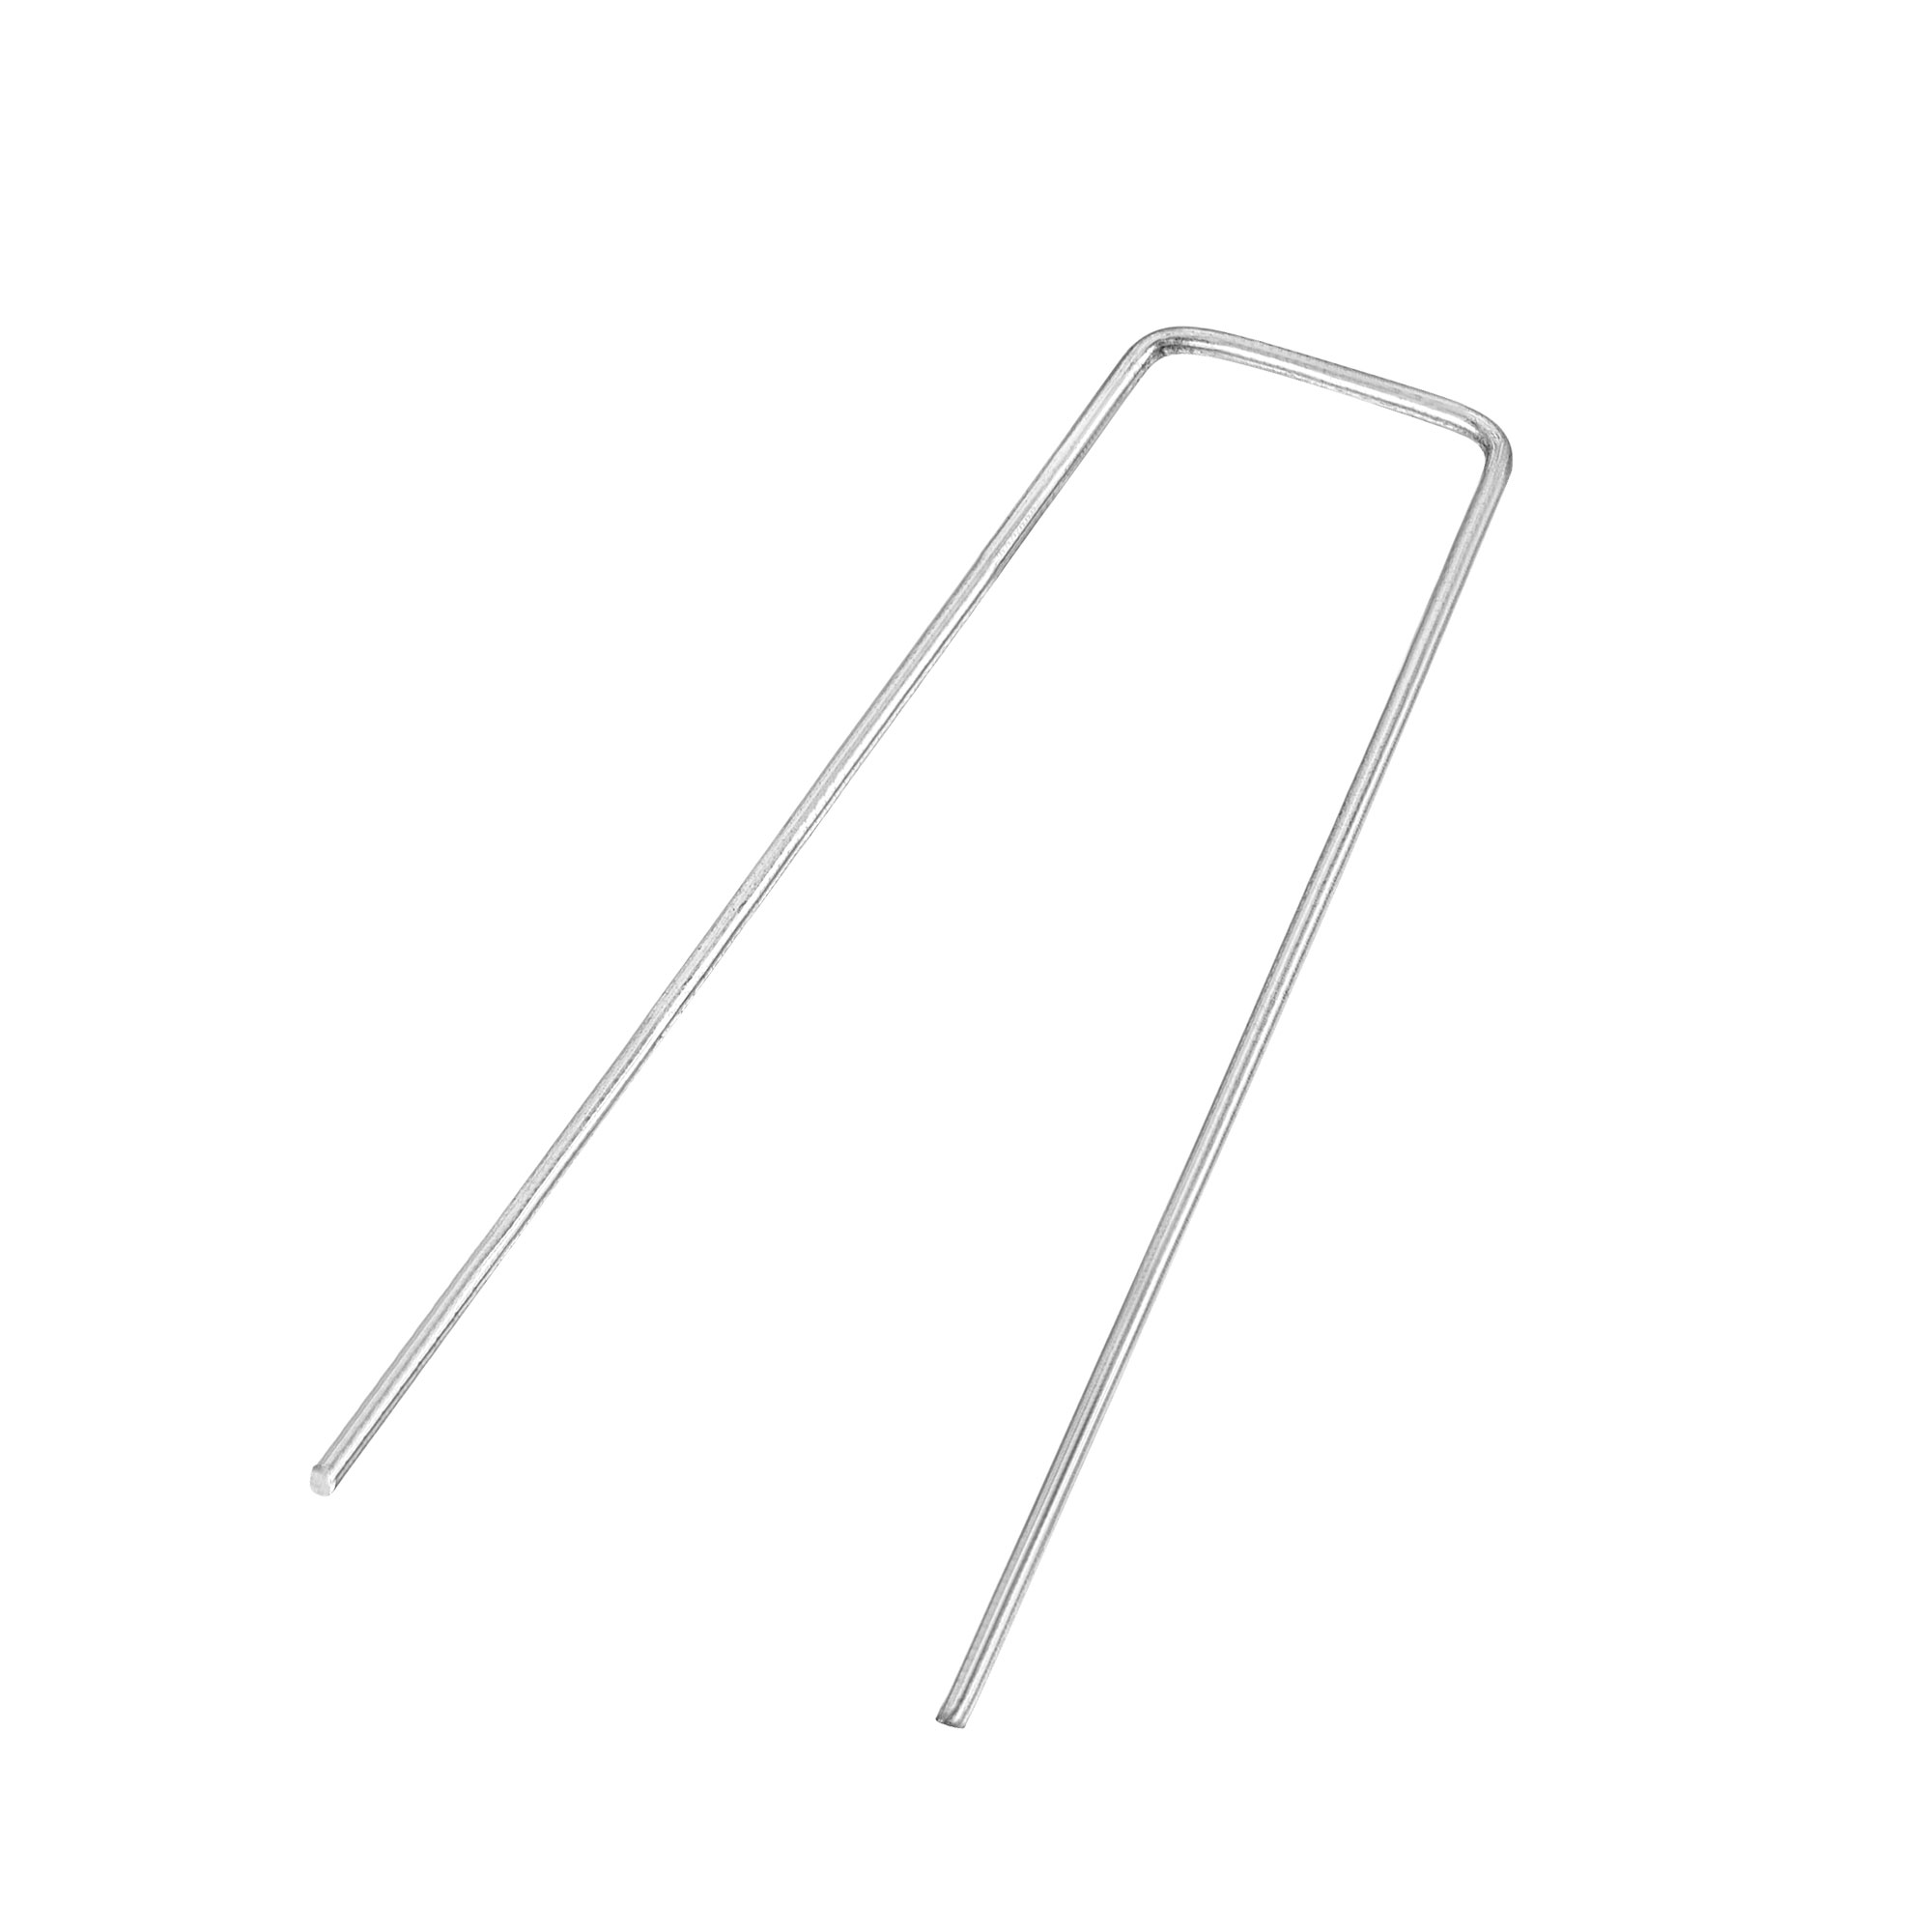 uxcell U-Shaped Garden Stakes, Galvanized Landscape Staples U Pins Anchor Fence Pegs, 150x40mm(LxW) 3mm Rod Dia Square 30pcs